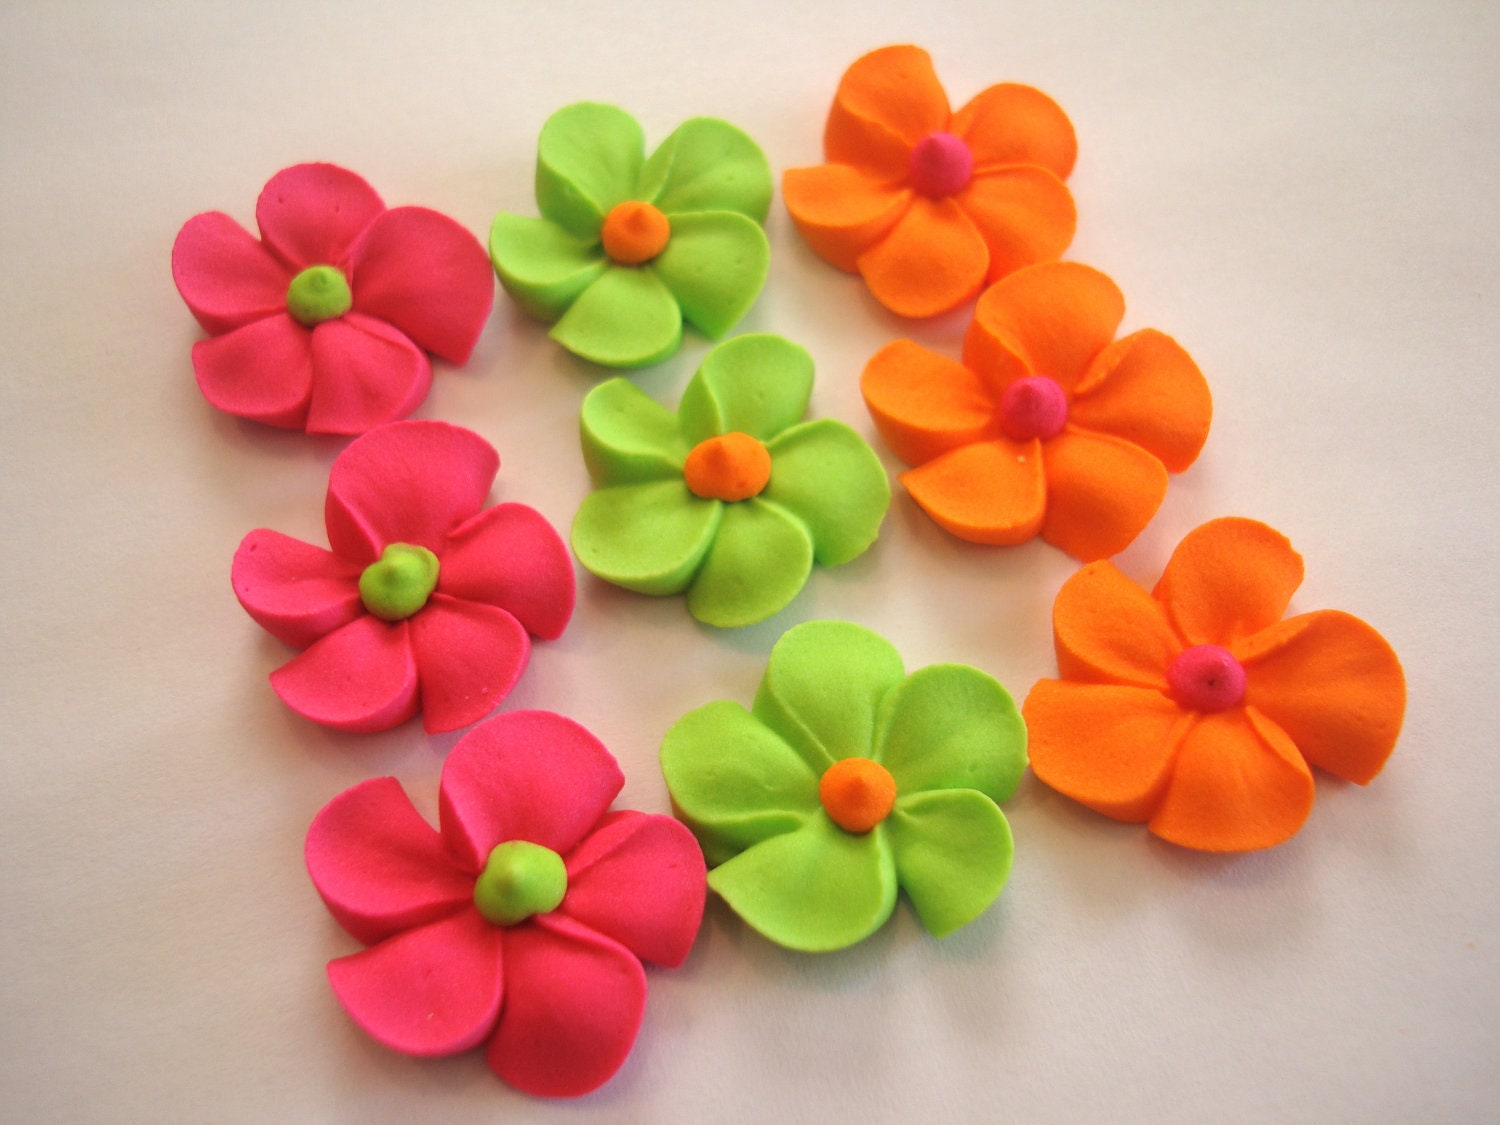 Cake Decorating Icing For Flowers : Royal Icing Flowers for Cake Decorating Lot of 150 by mochasof